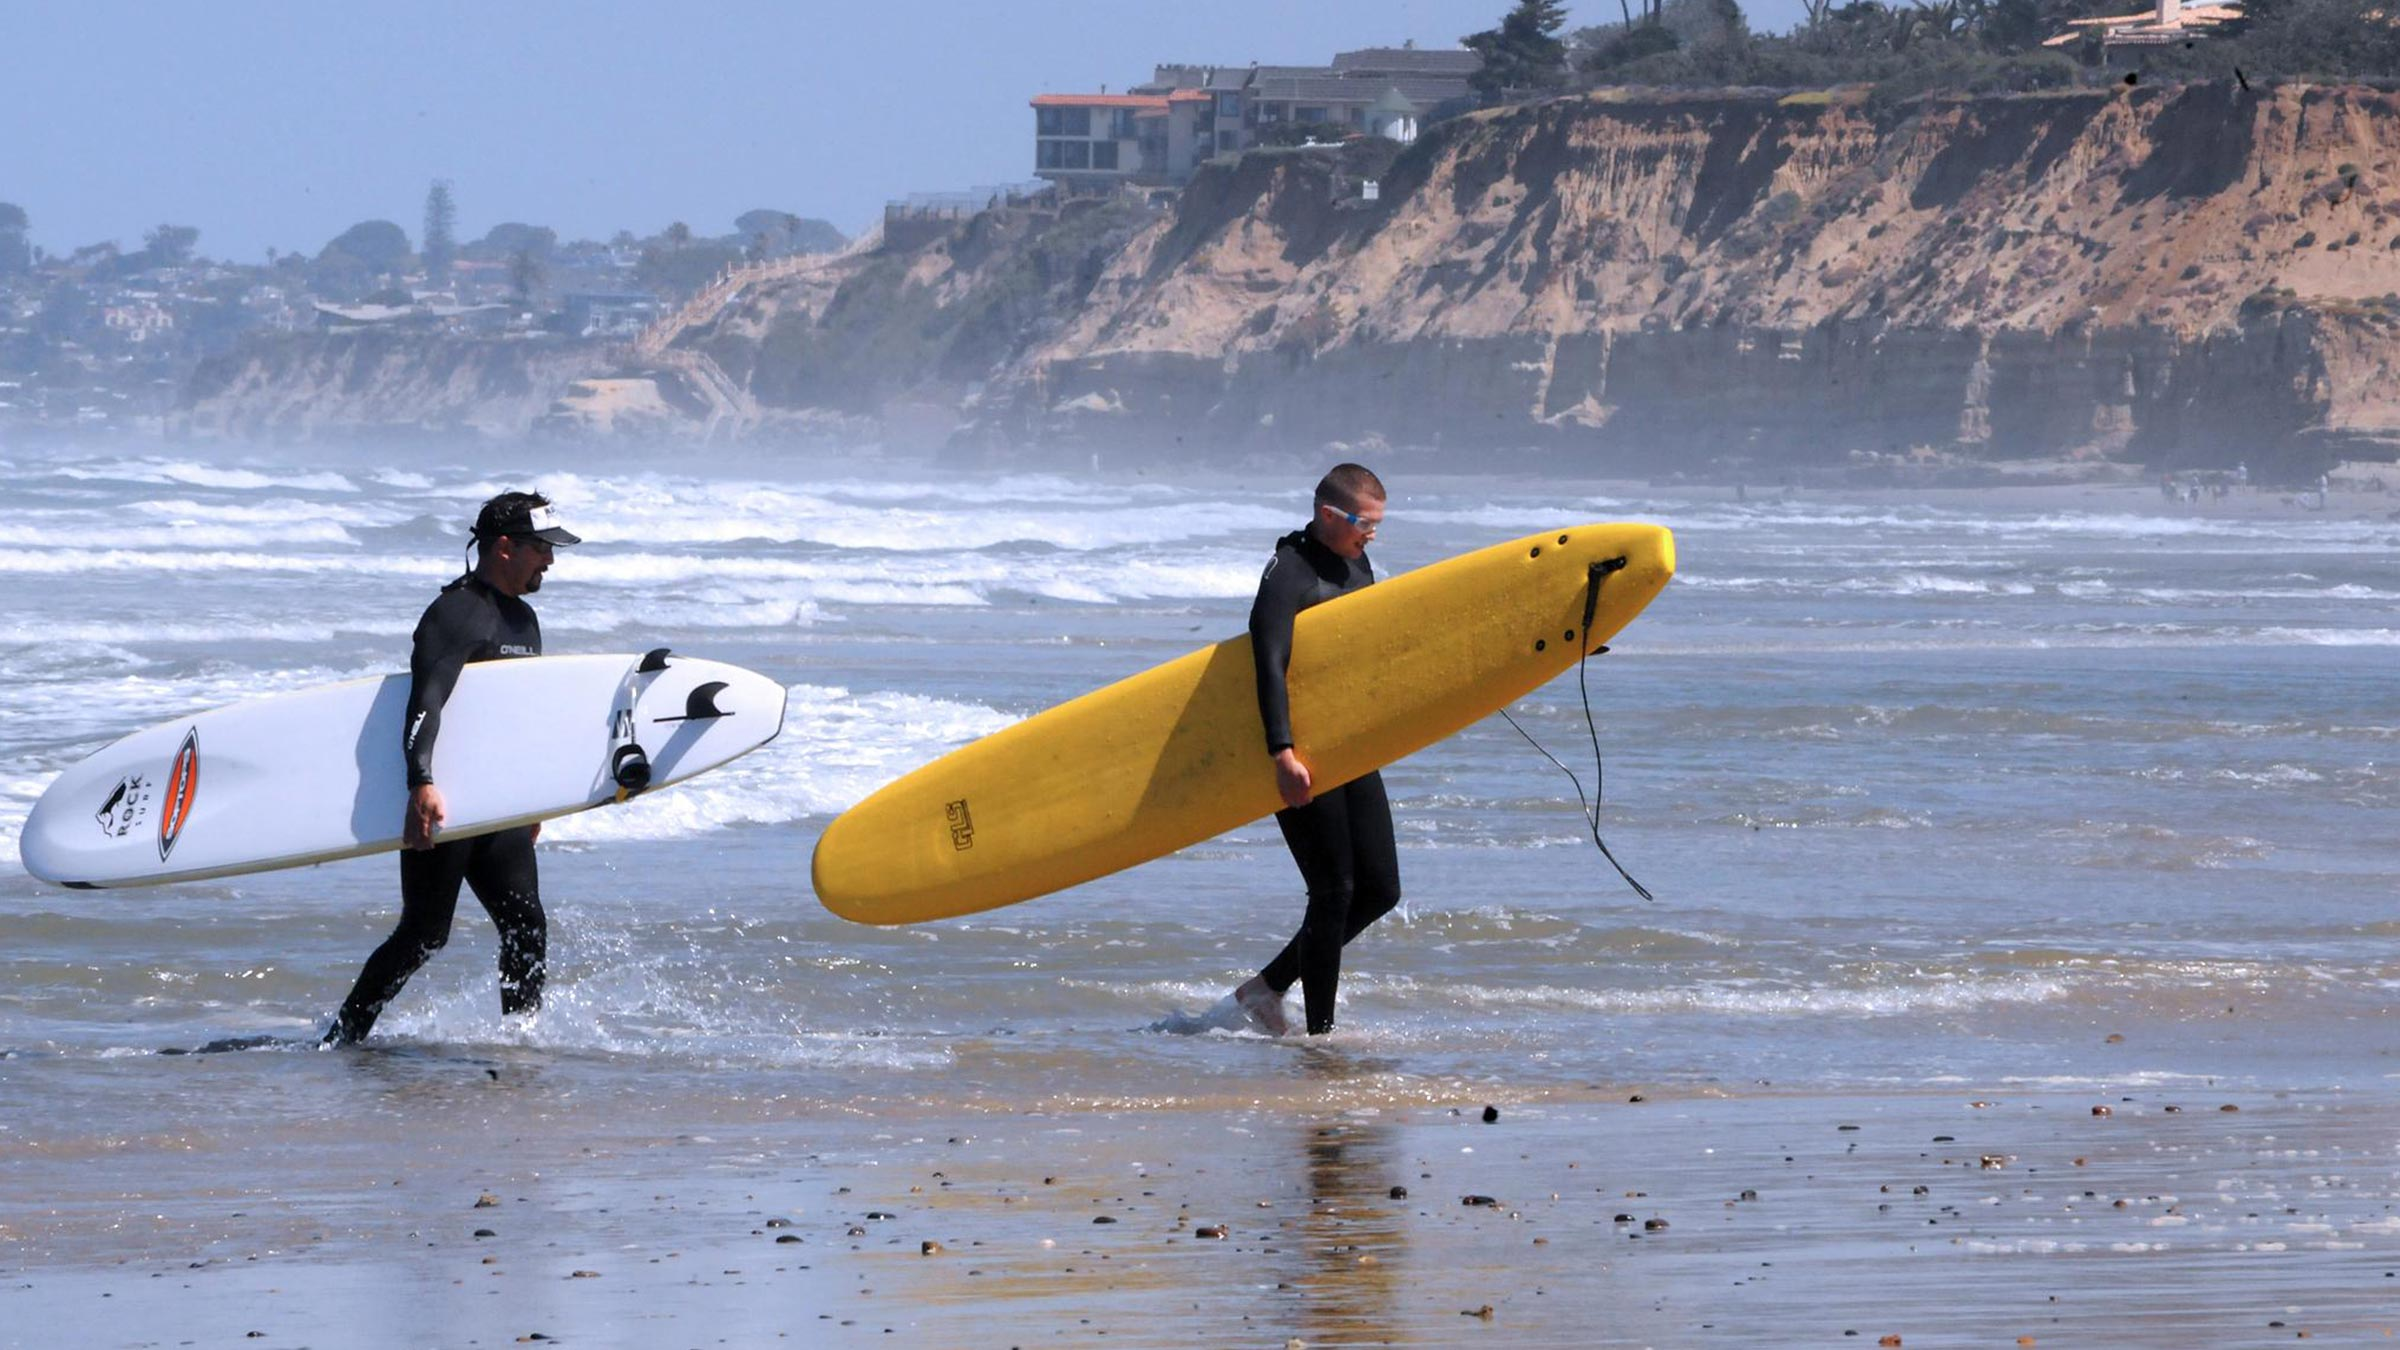 Two men leave the water after a surfing lesson